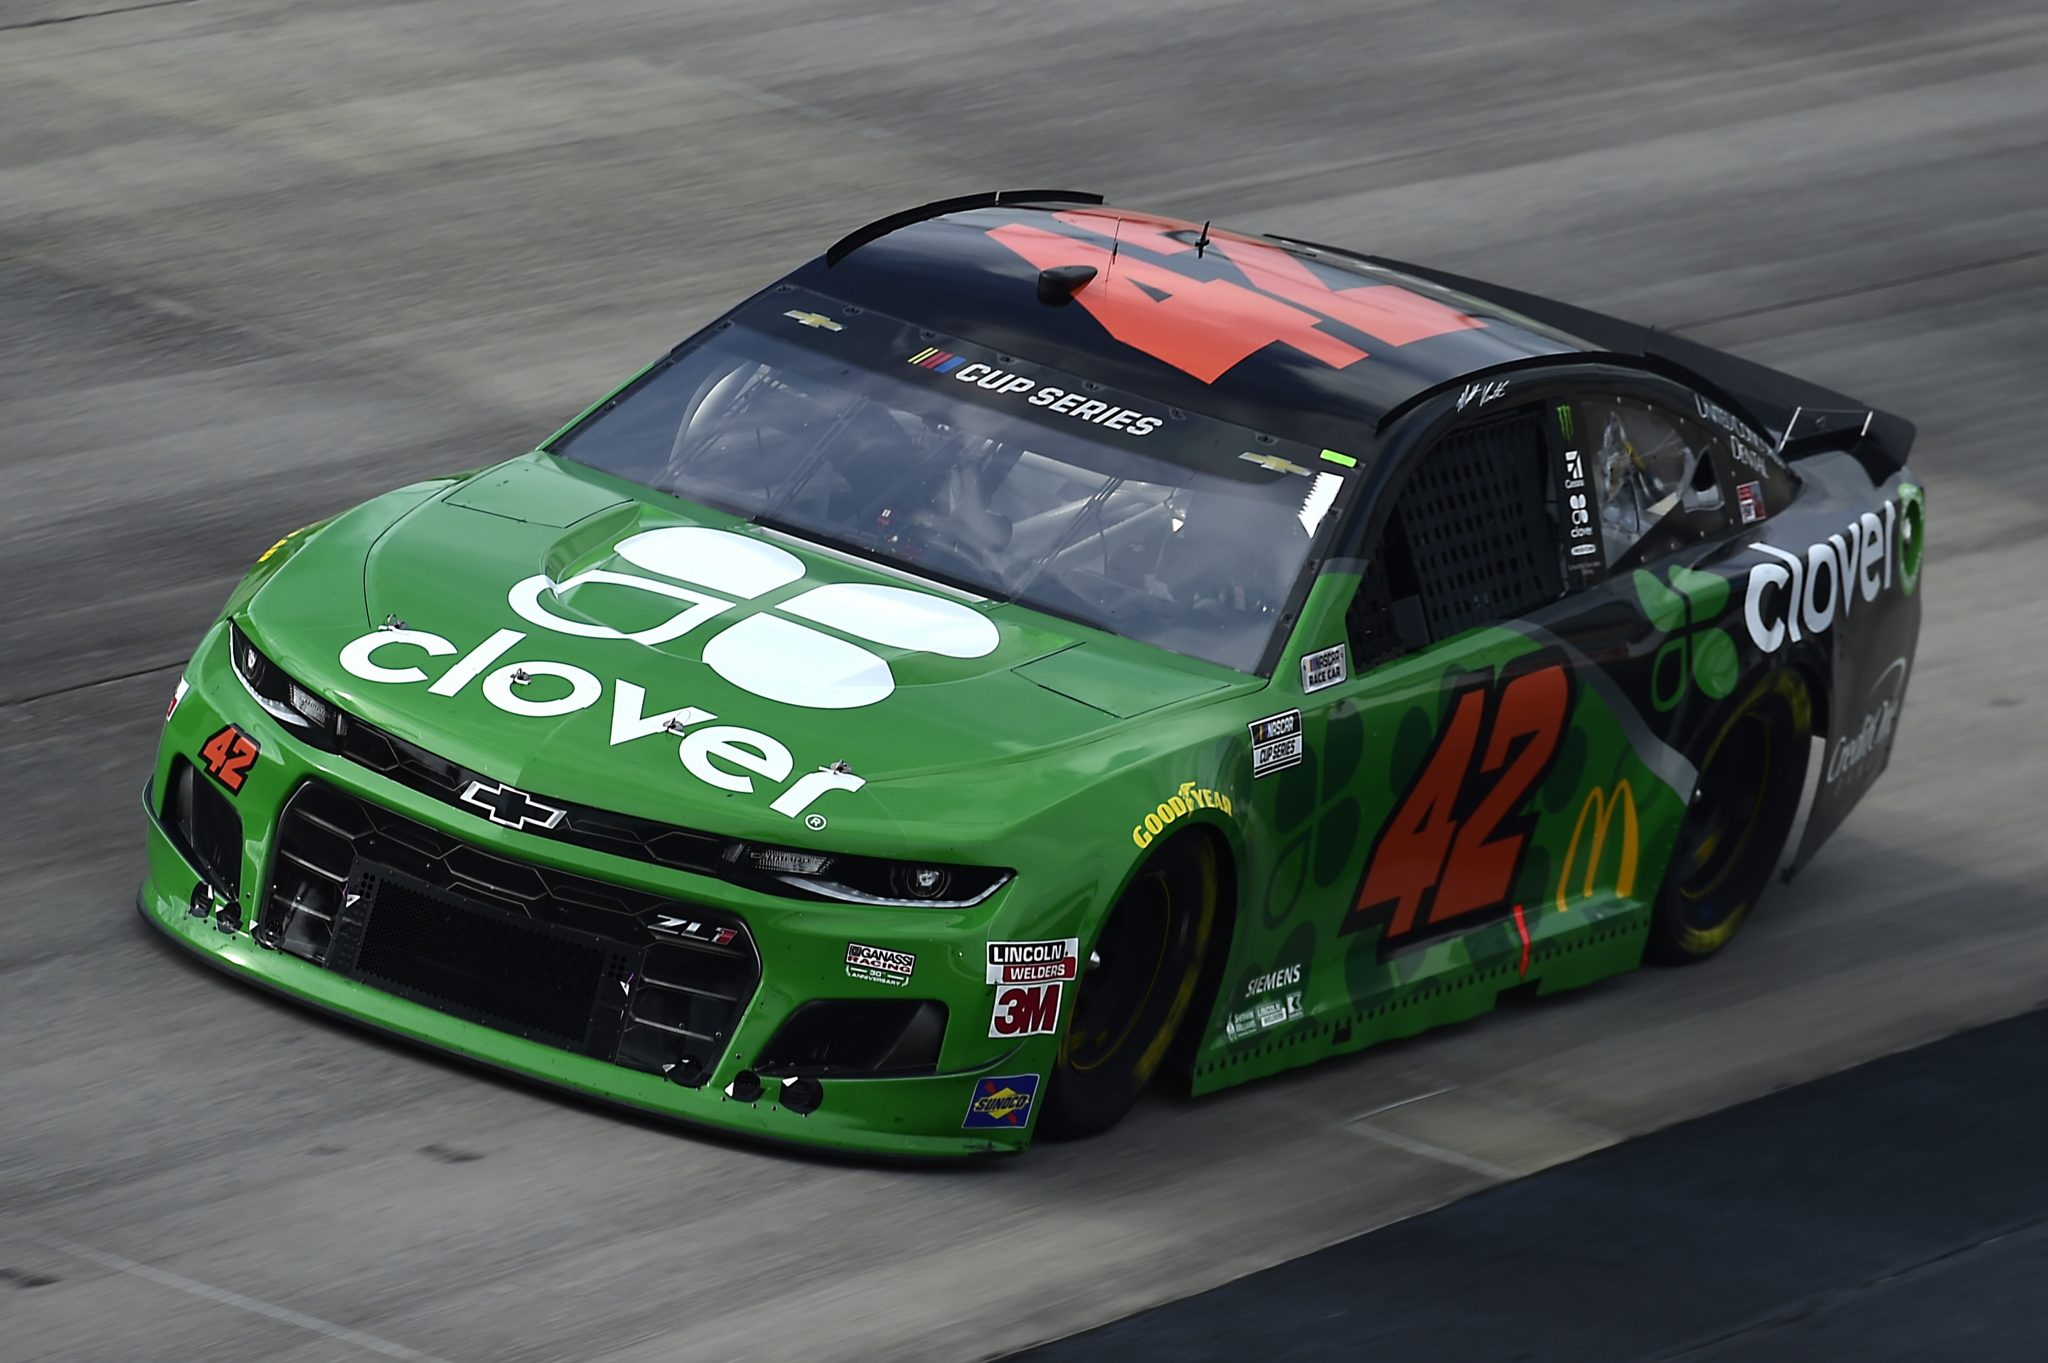 DOVER, DELAWARE - AUGUST 22: Matt Kenseth, driver of the #42 Clover Chevrolet, drives during the NASCAR Cup Series Drydene 311 at Dover International Speedway on August 22, 2020 in Dover, Delaware. (Photo by Jared C. Tilton/Getty Images) | Getty Images